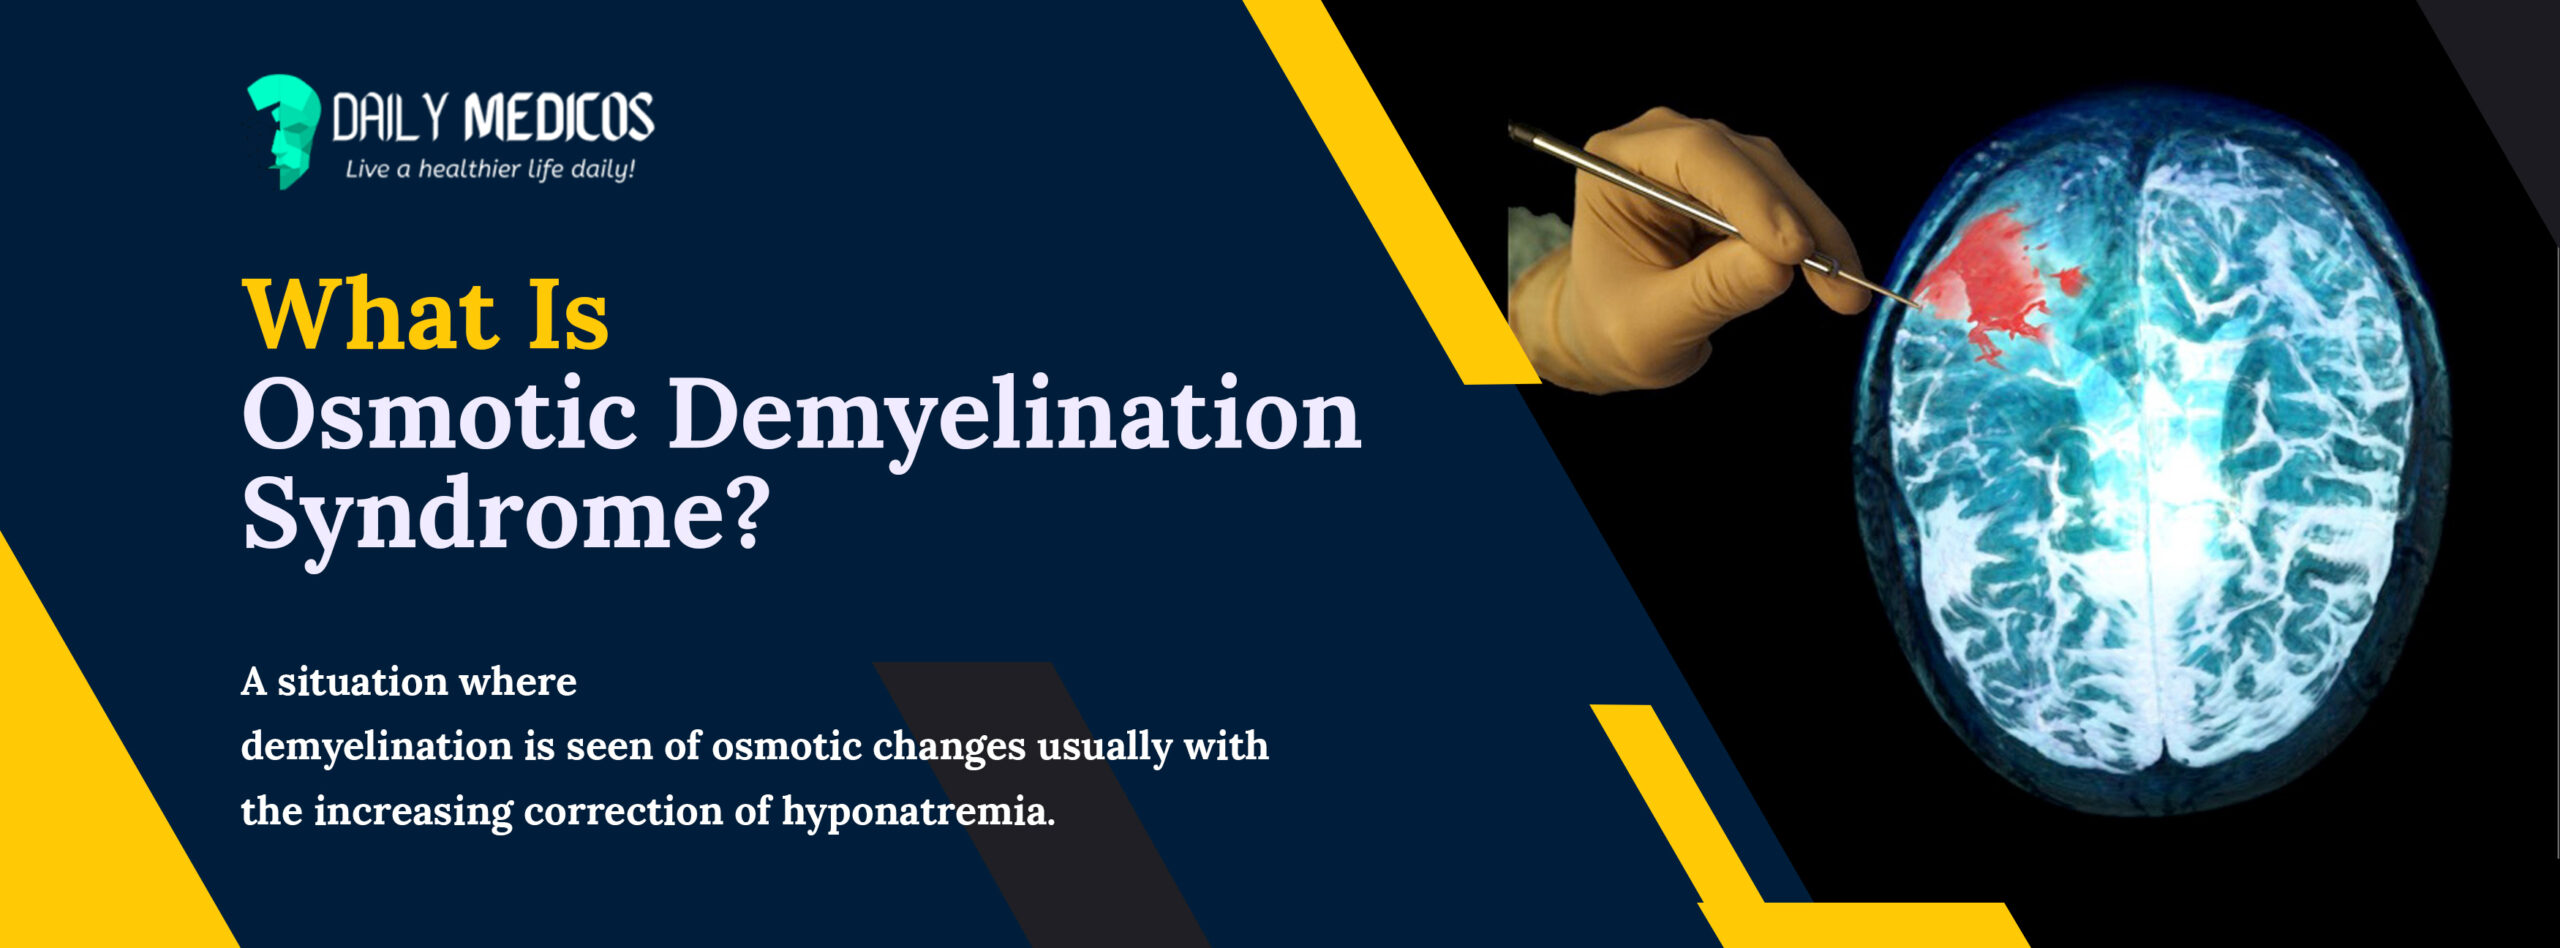 Osmotic Demyelination Syndrome: All You Need To Know 1 - Daily Medicos